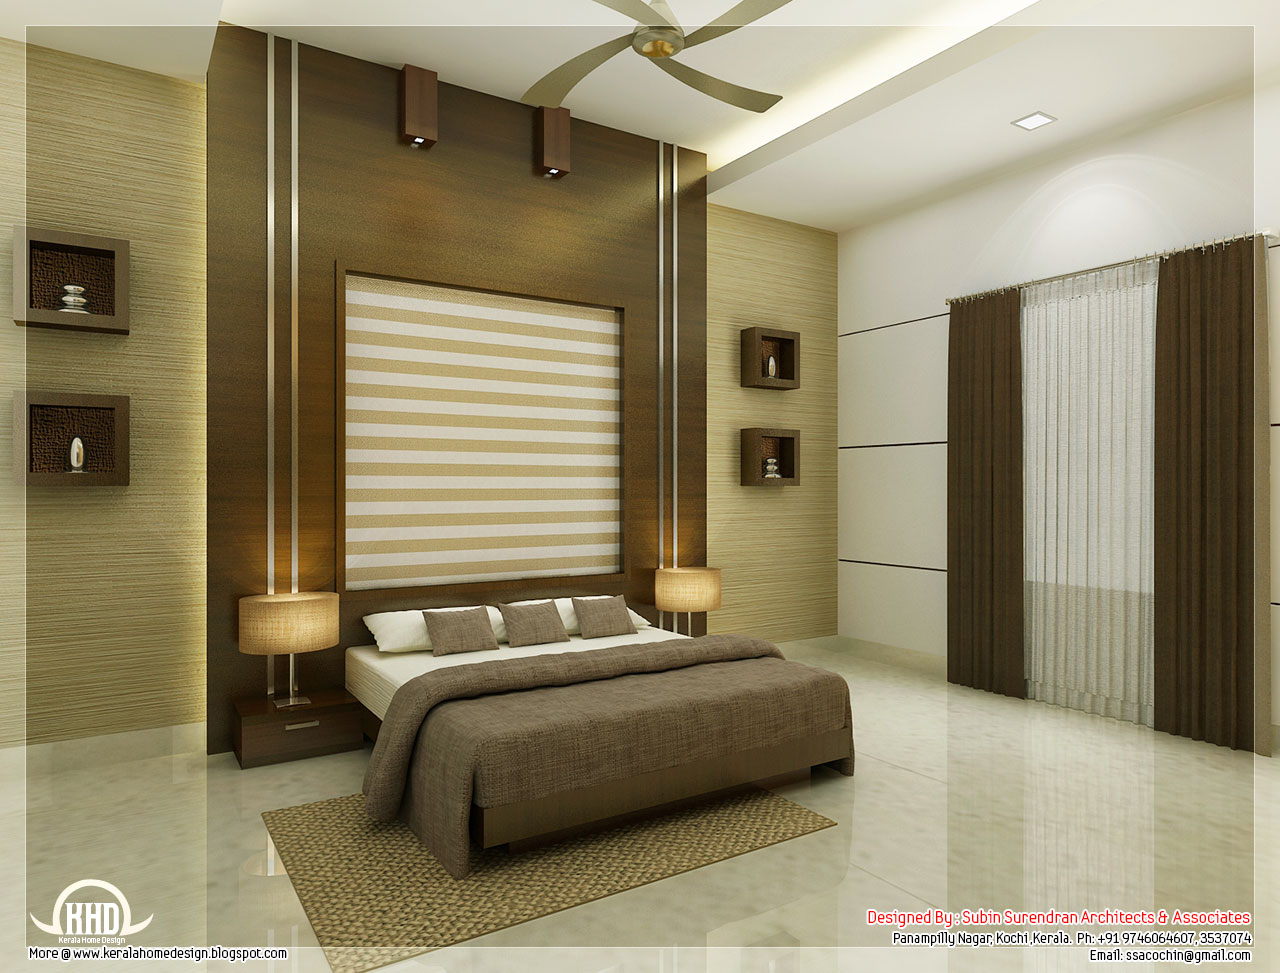 Beautiful bedroom interior designs kerala home design for House interior design nagercoil